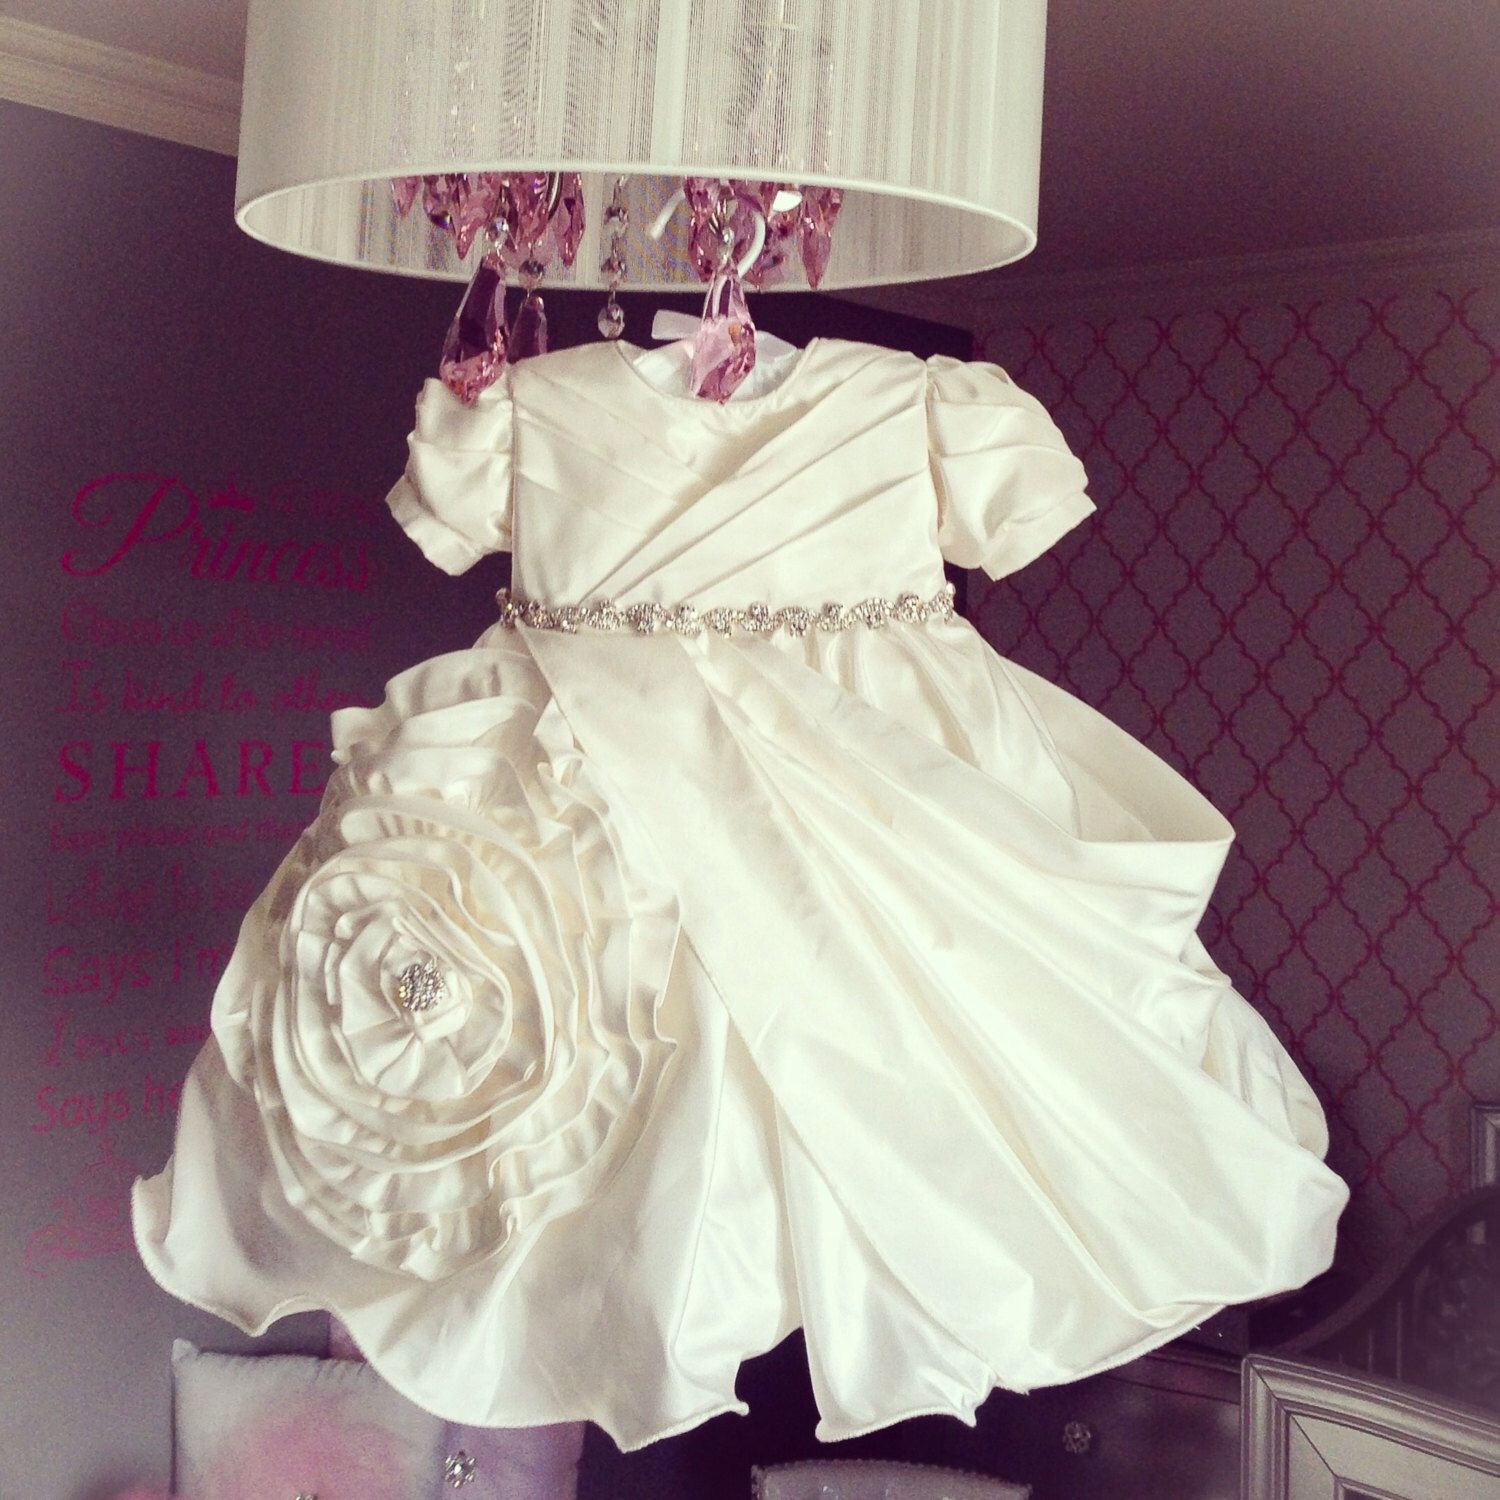 Baby girl Baptism Dress by MariaArcieroCouture on Etsy https://www.etsy.com/listing/118808633/baby-girl-baptism-dress